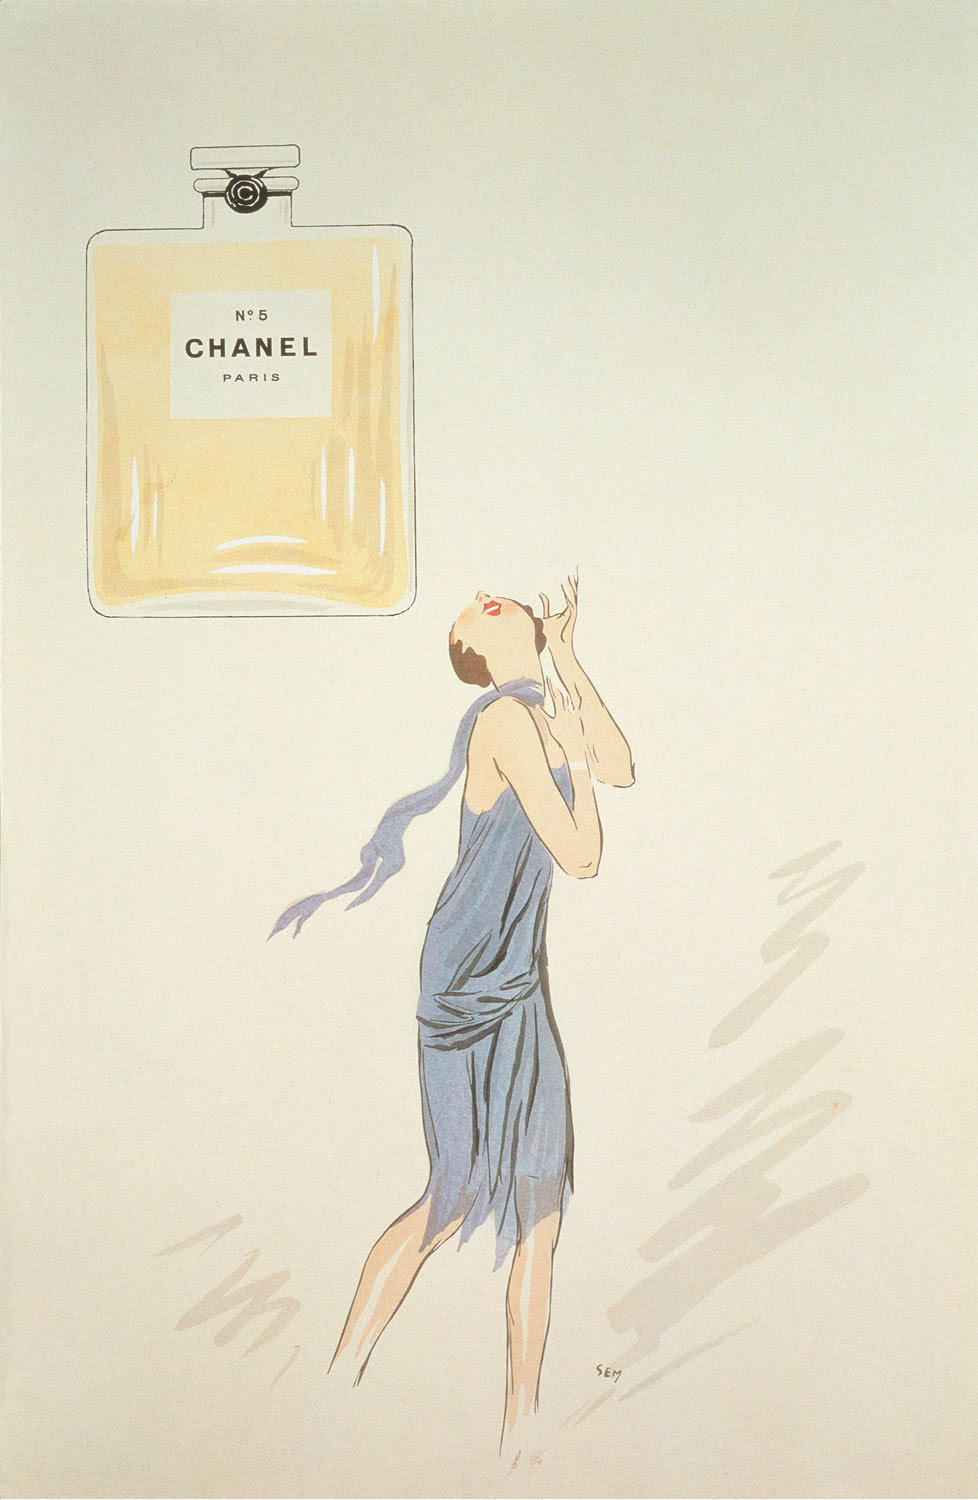 A 1921 illustration of Chanel No. 5 by the cartoonist Sem.